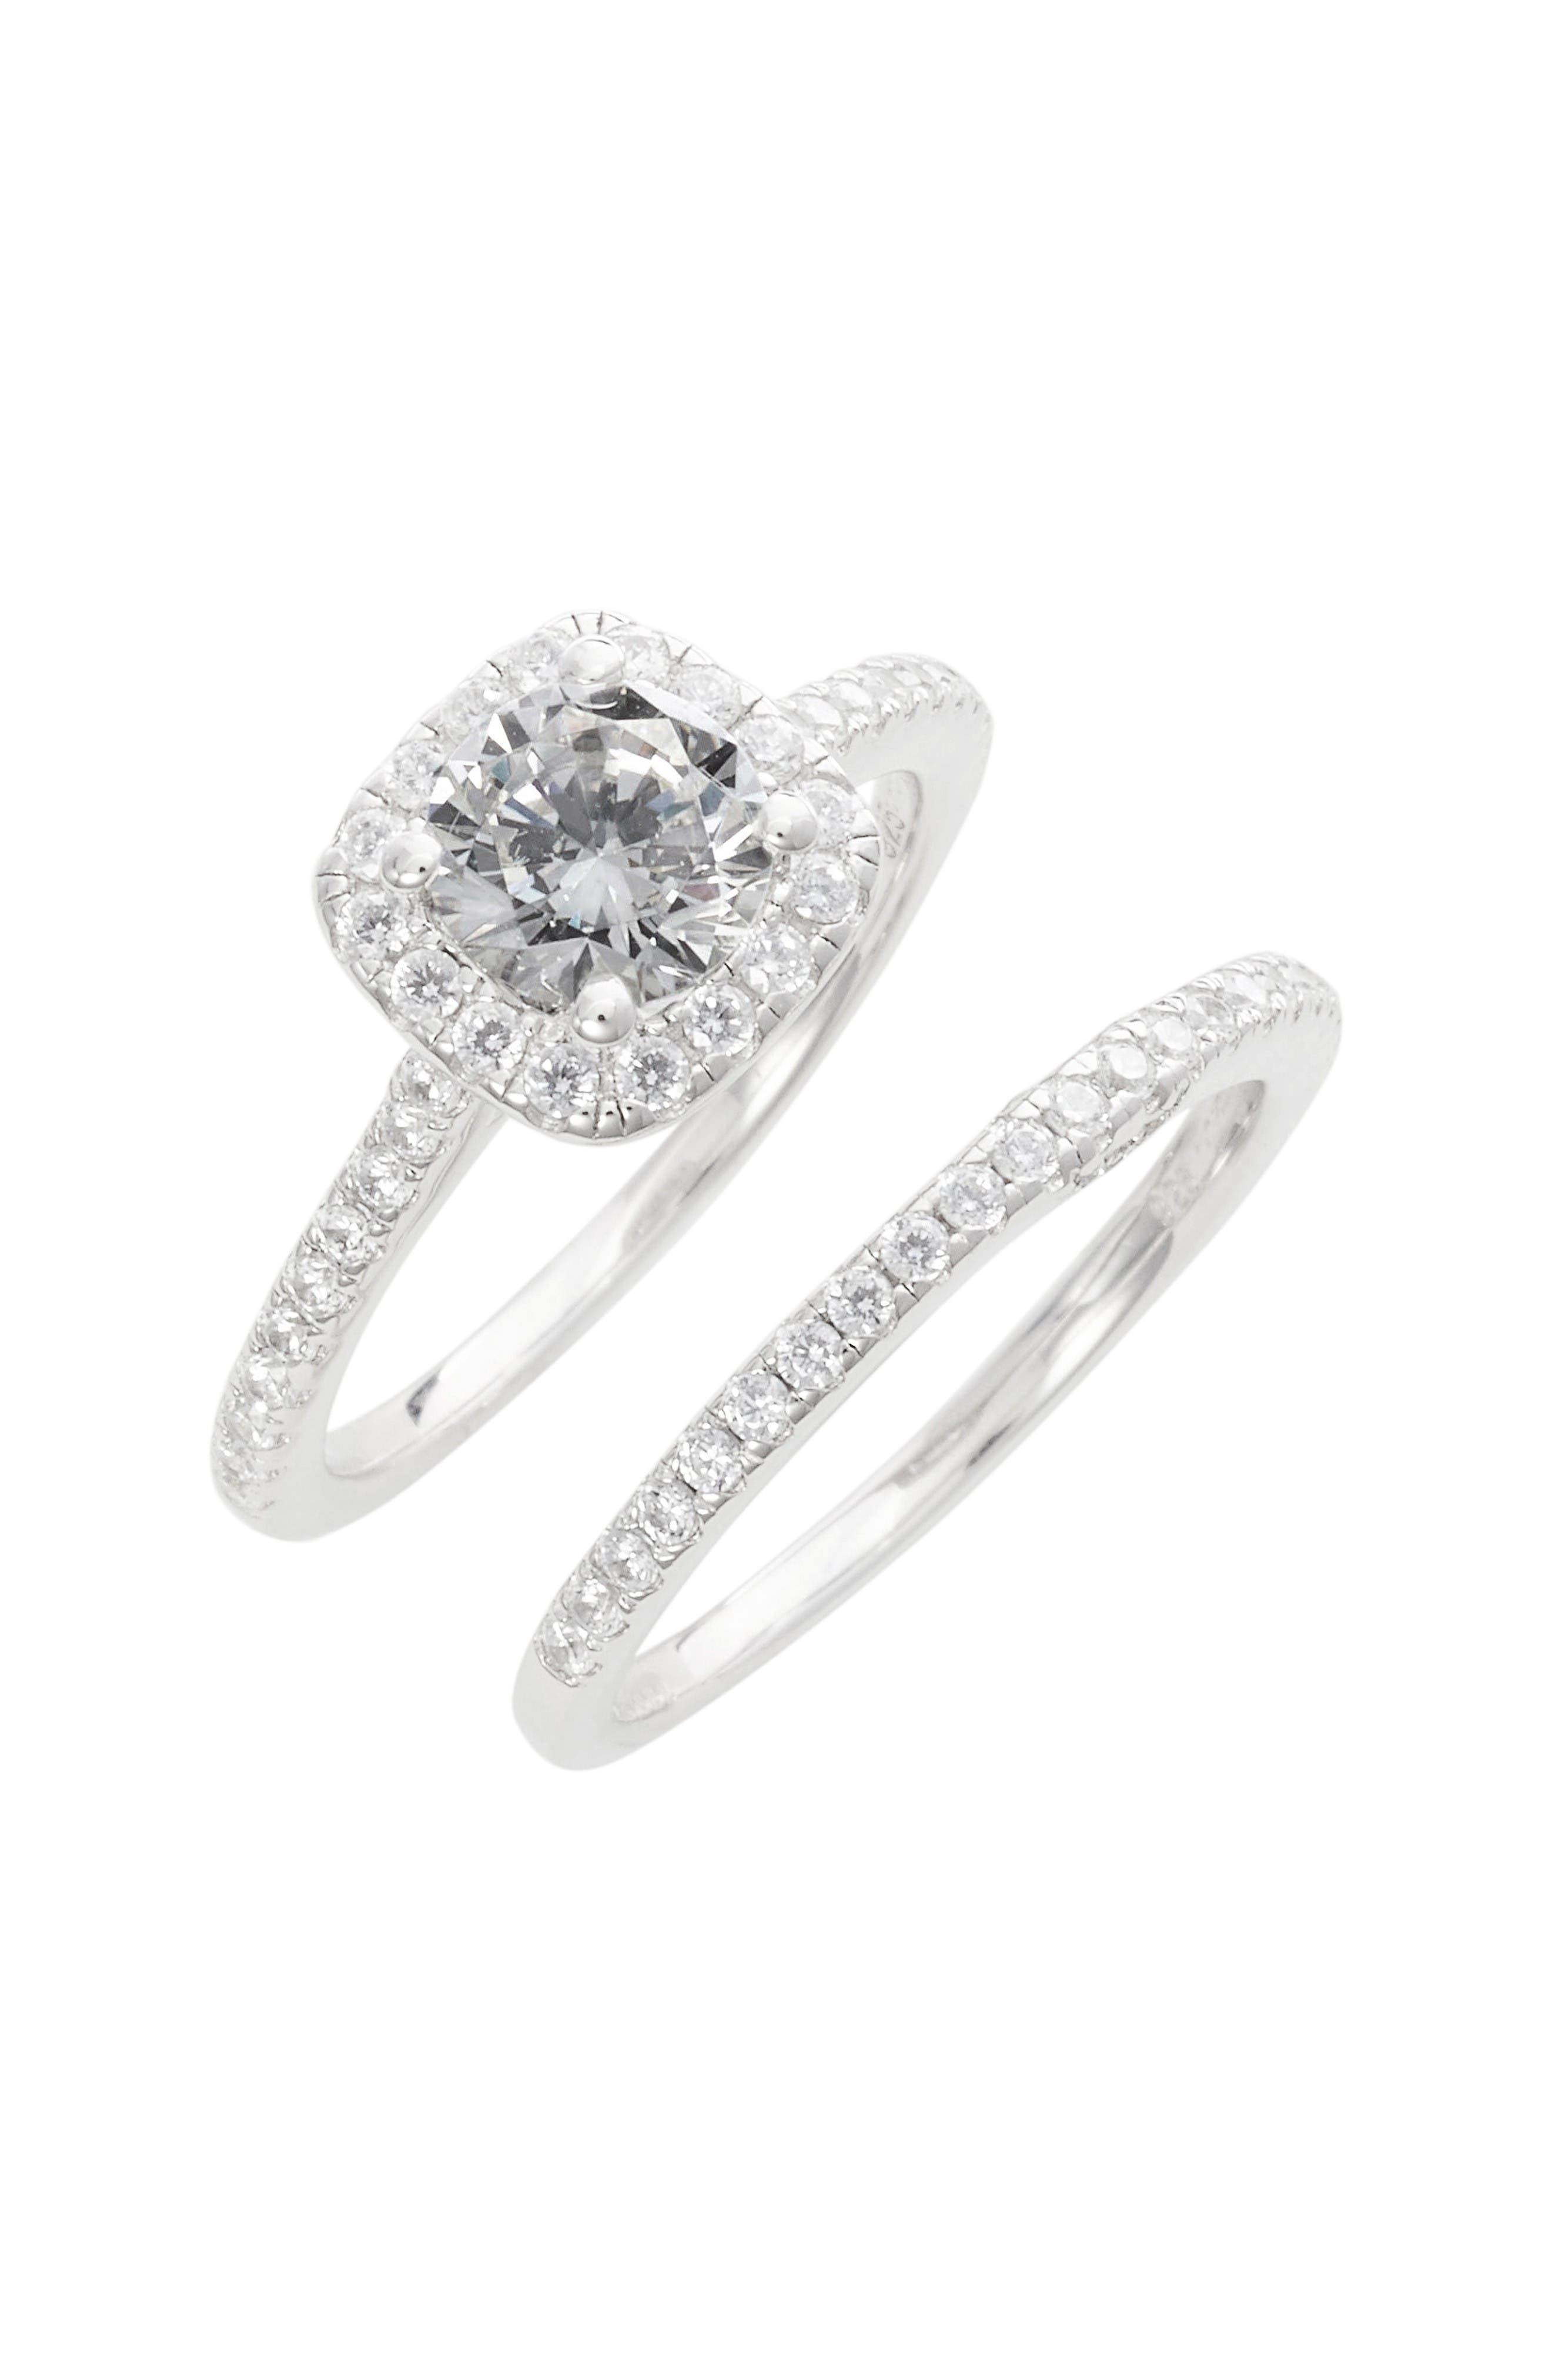 Alternate Image 1 Selected - Lafonn Simulated Diamond Engagement Ring & Band